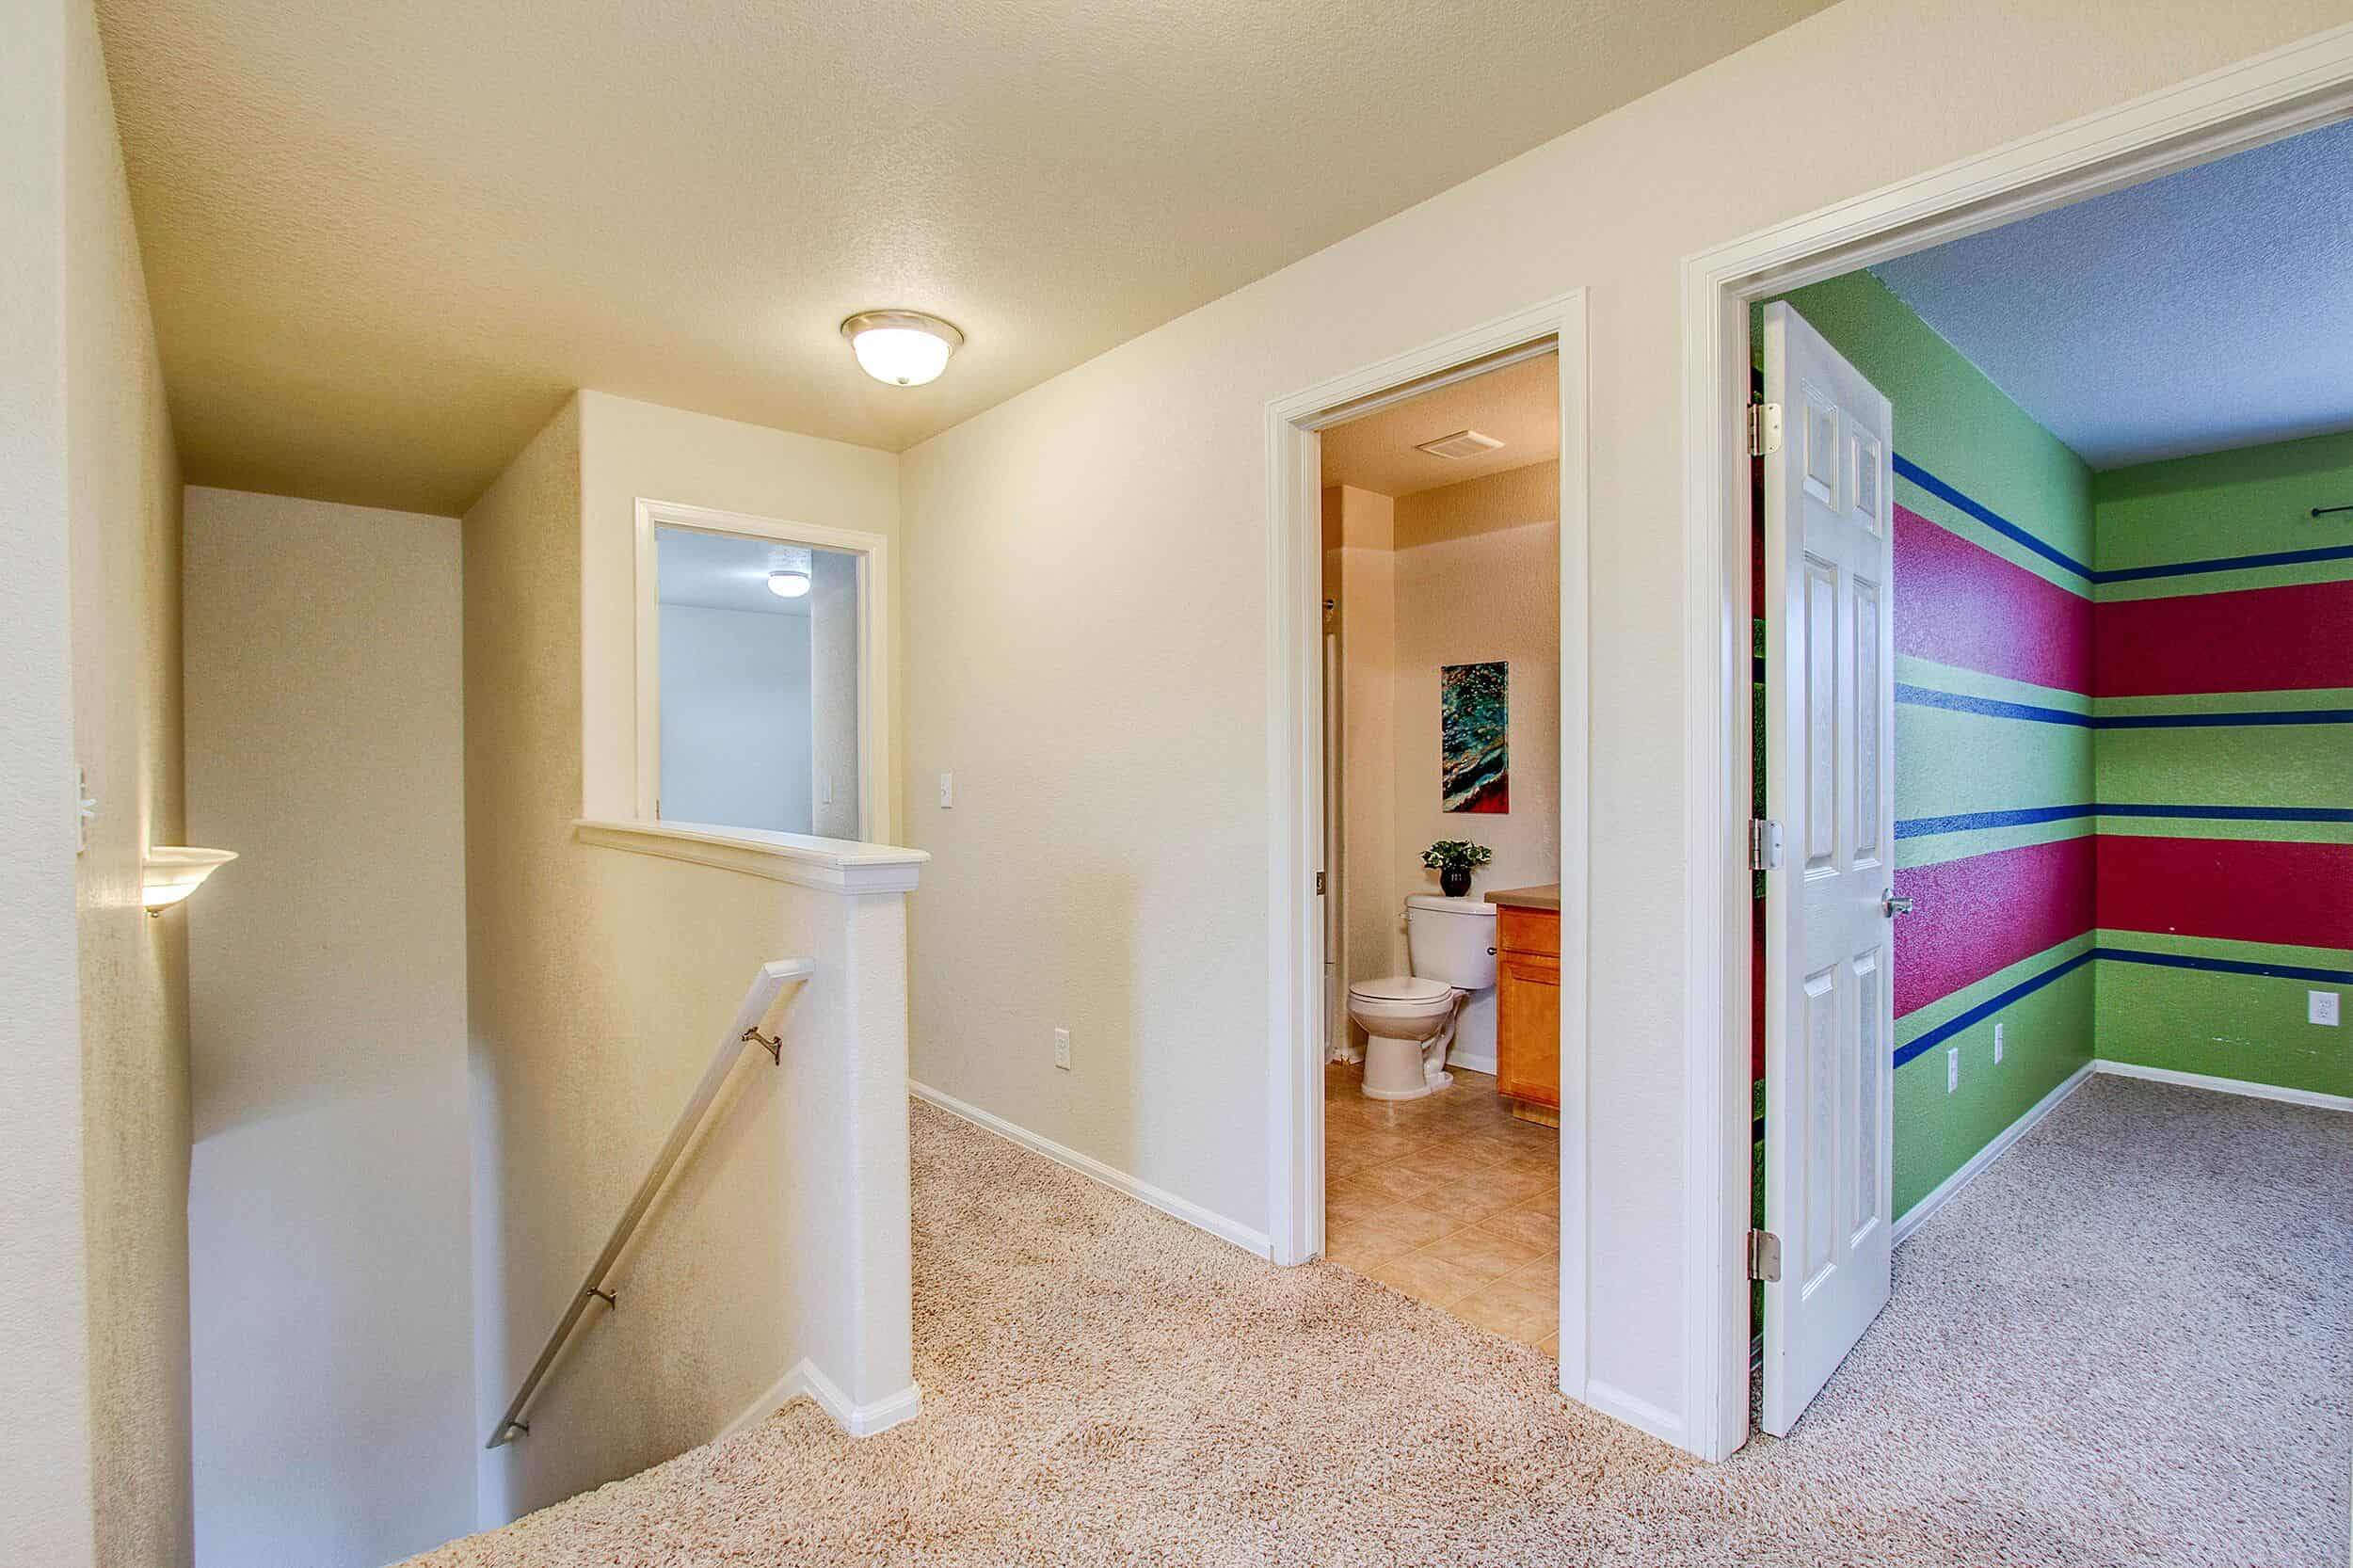 Upper Level Landing into Bedrooms and Bathroom